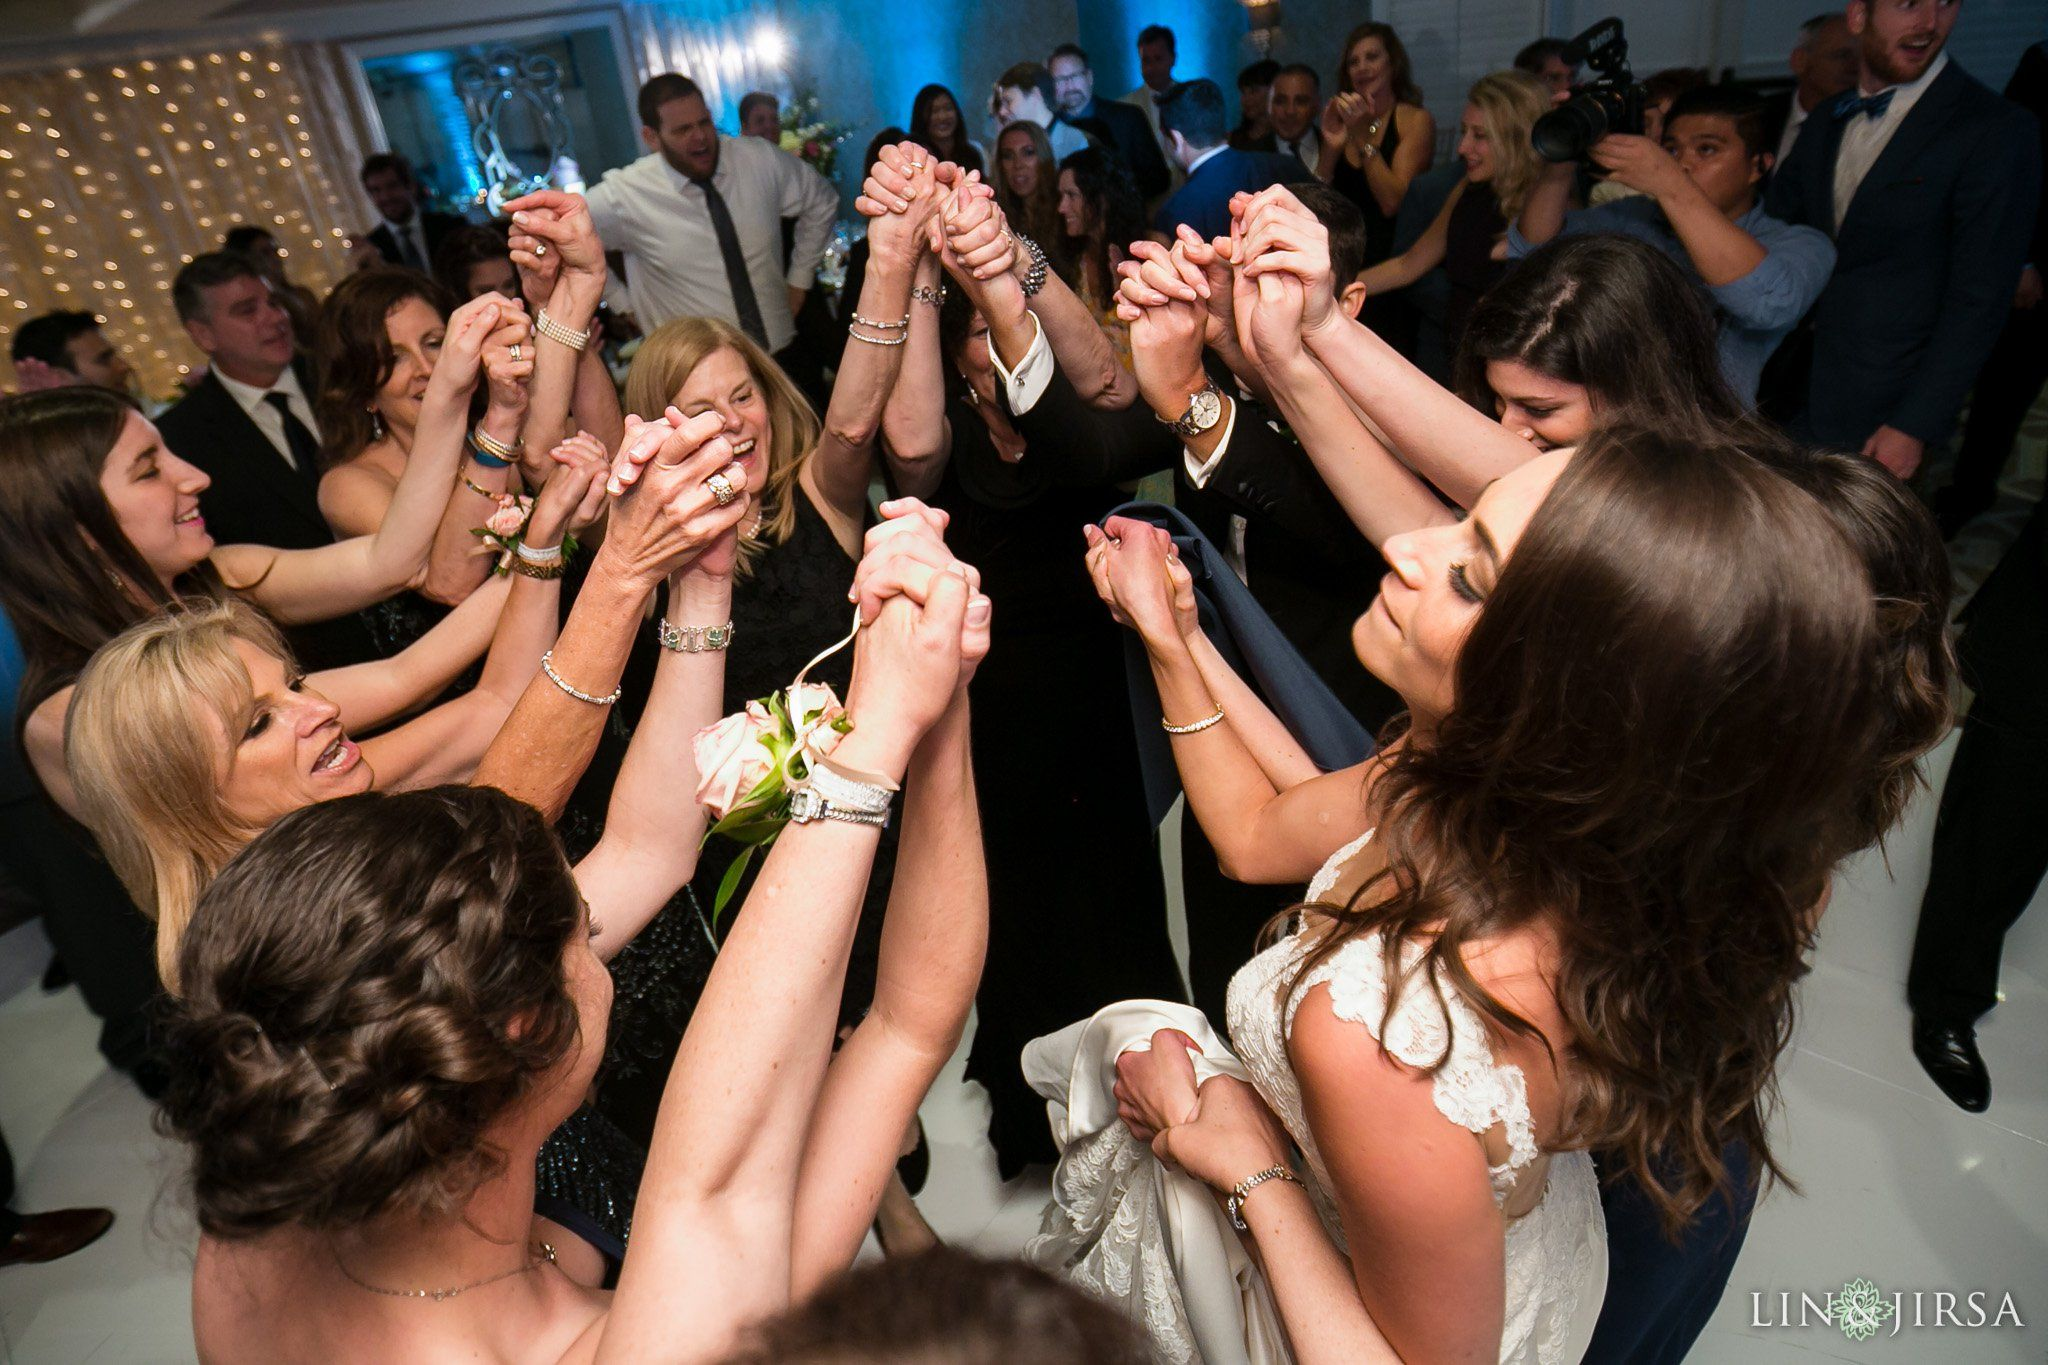 08 Jewish Wedding Photography Hora Dance Jewish Wedding Wedding Photography Photography